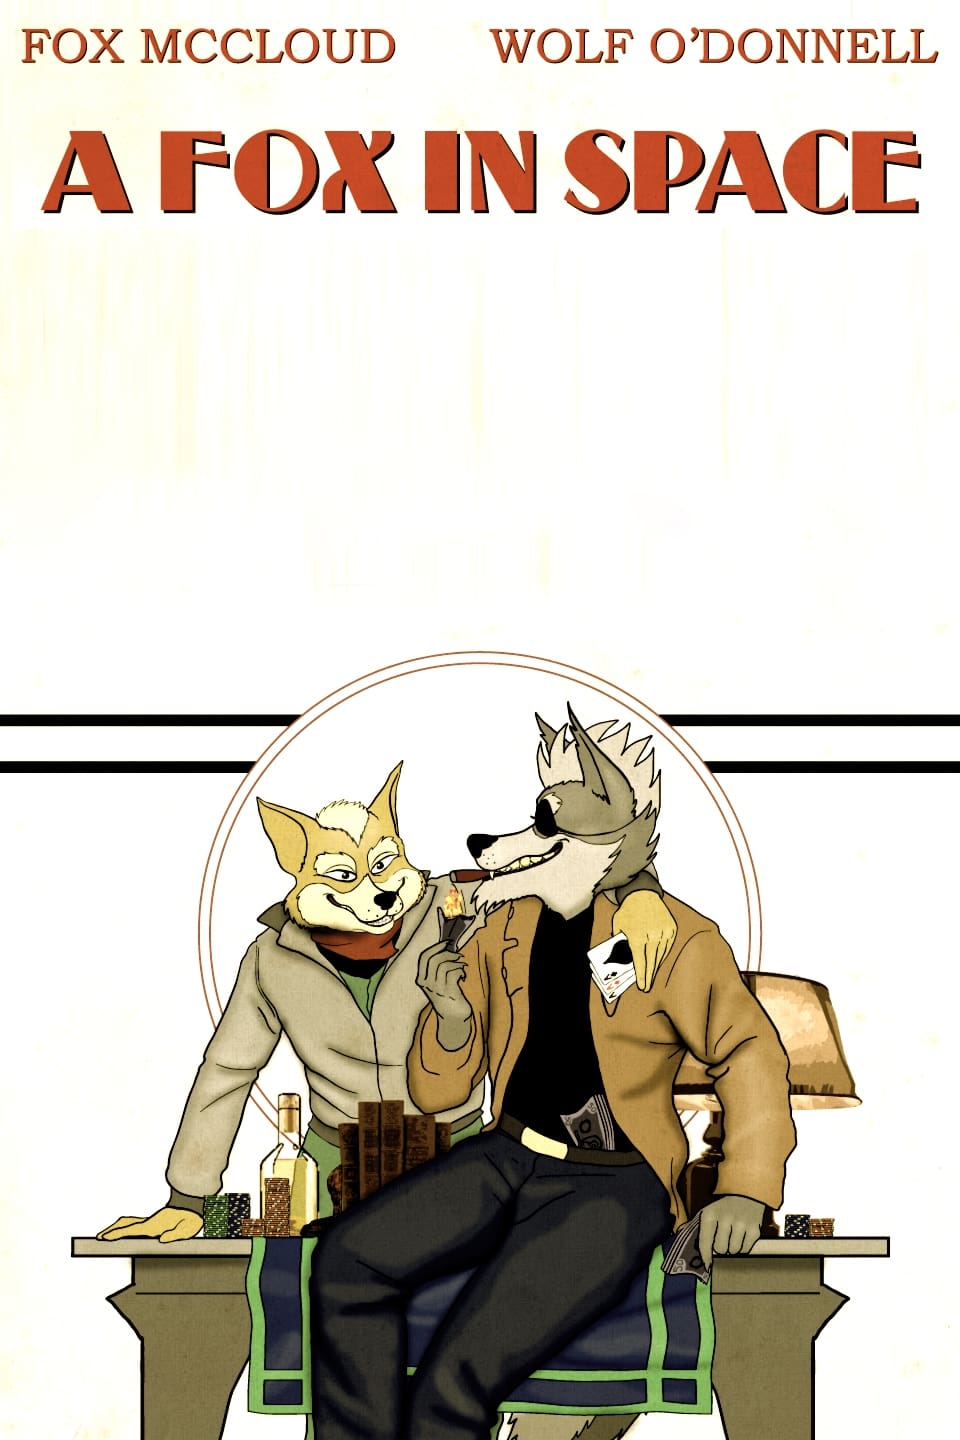 A Fox in Space TV Shows About Anthropomorphism